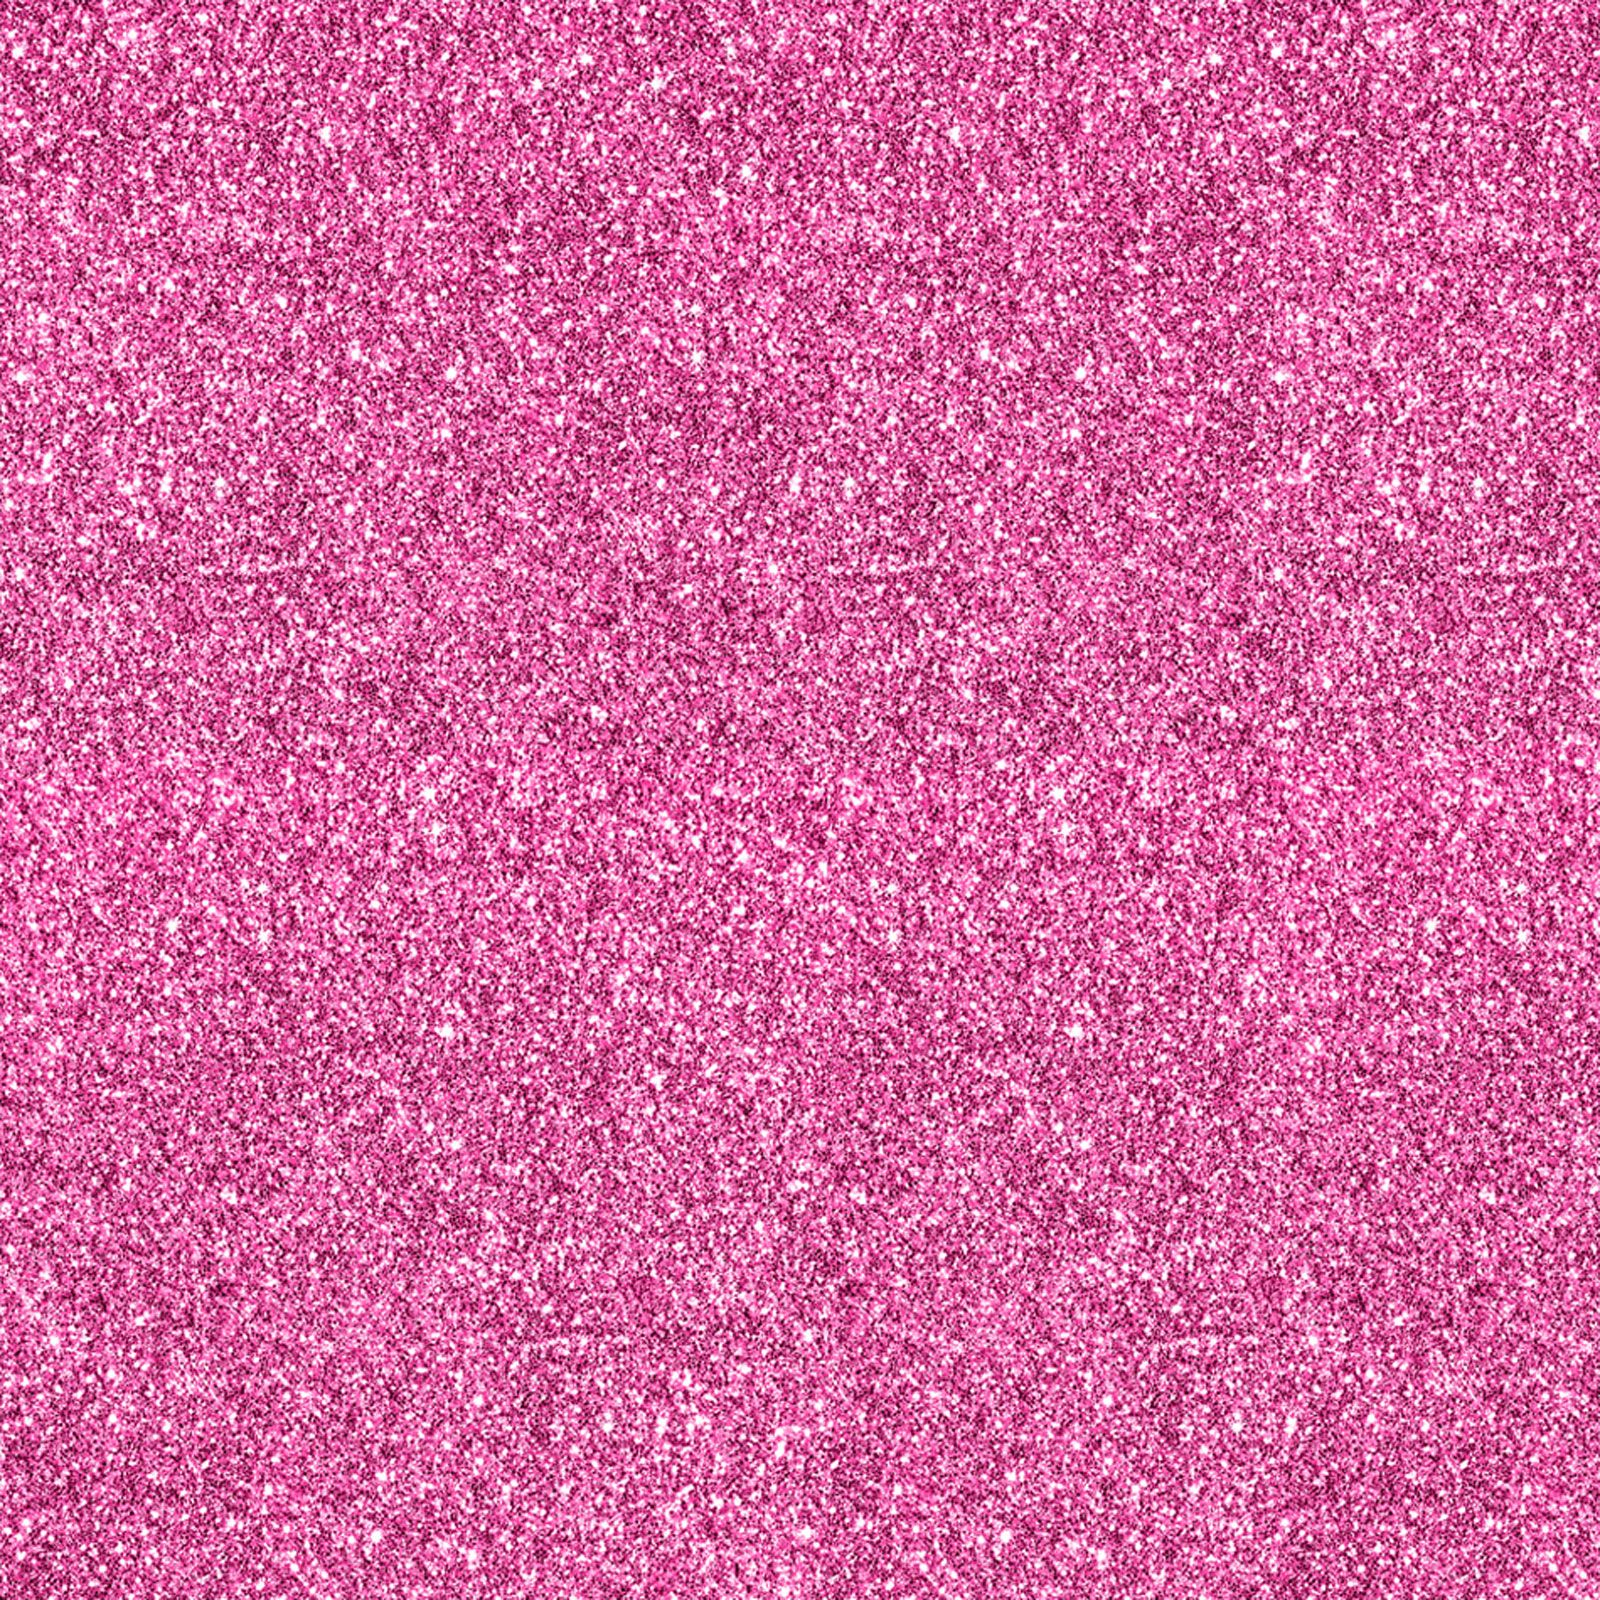 Sparkly Bedroom Wallpaper Sparkle Glitter Wallpaper Ideal For Feature Walls Pink Gold